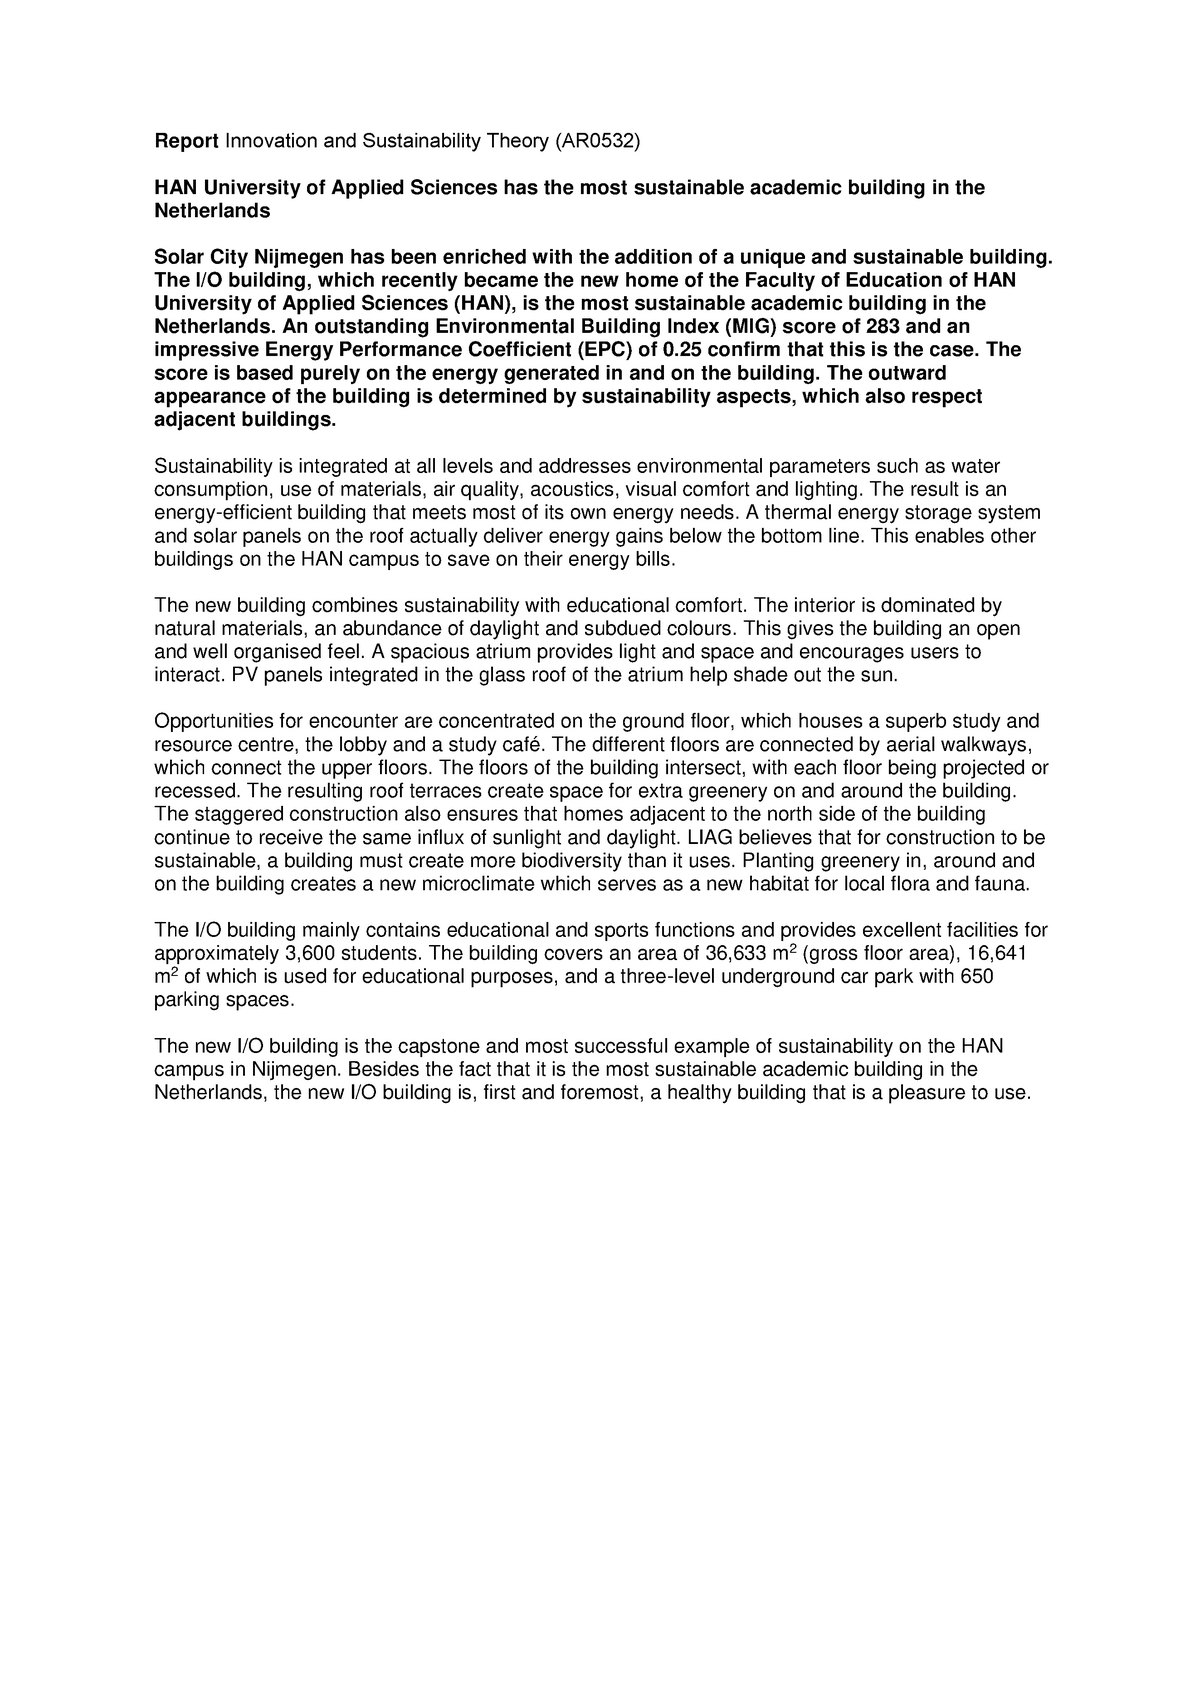 Essay Concept Report Report Innovation and Sustainability